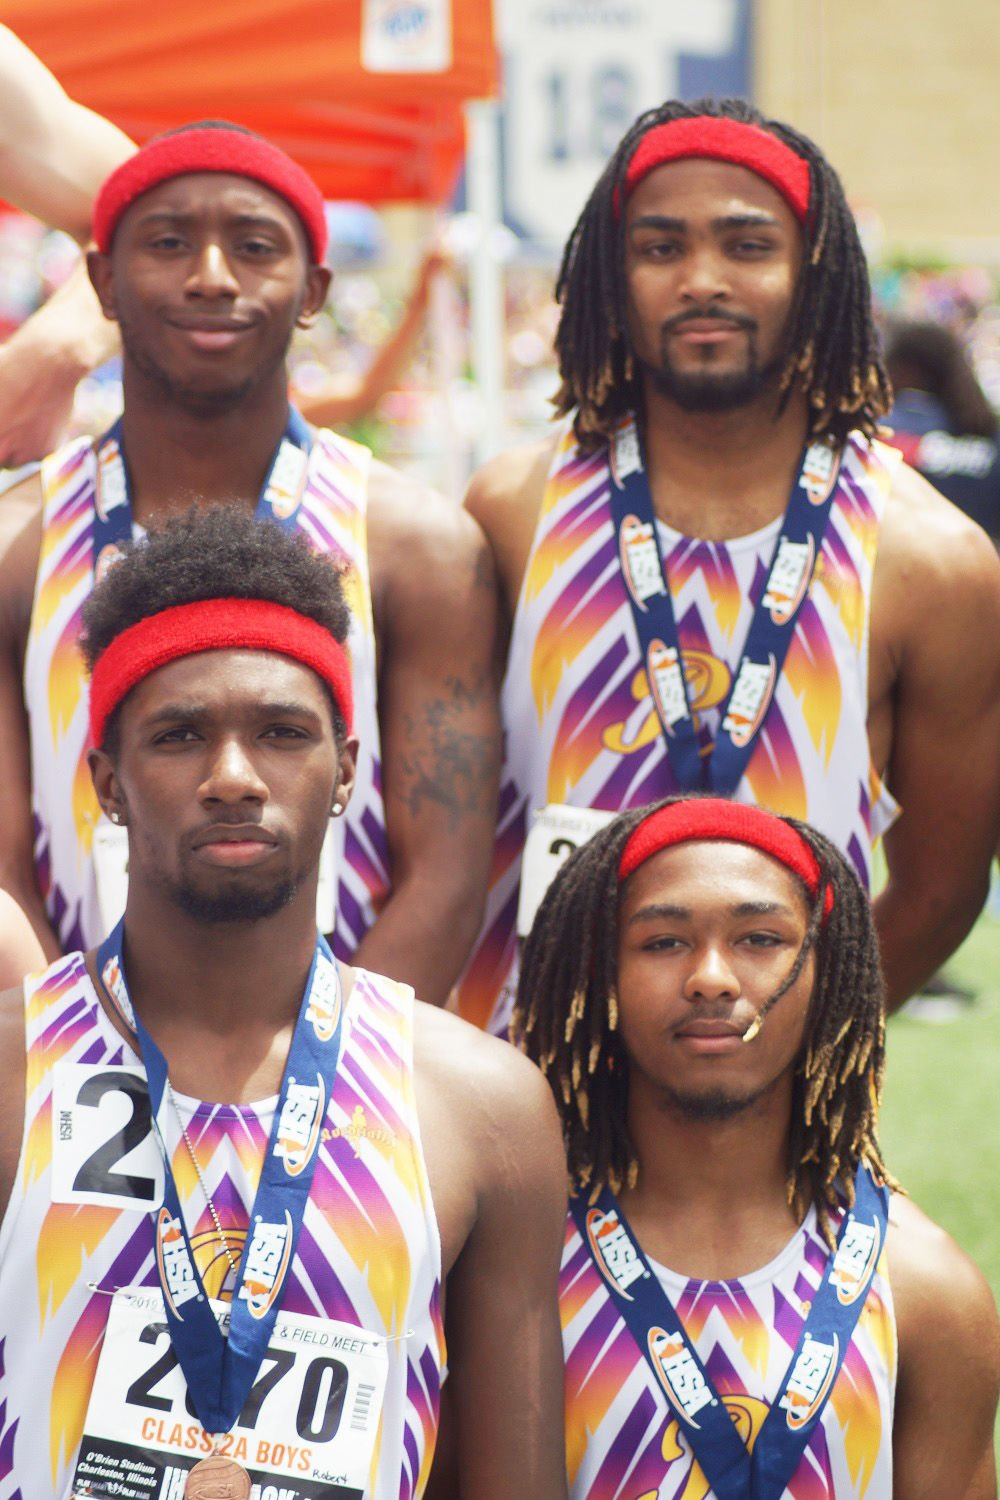 Rantoul's Harper and relay teams earn bronze medals at state